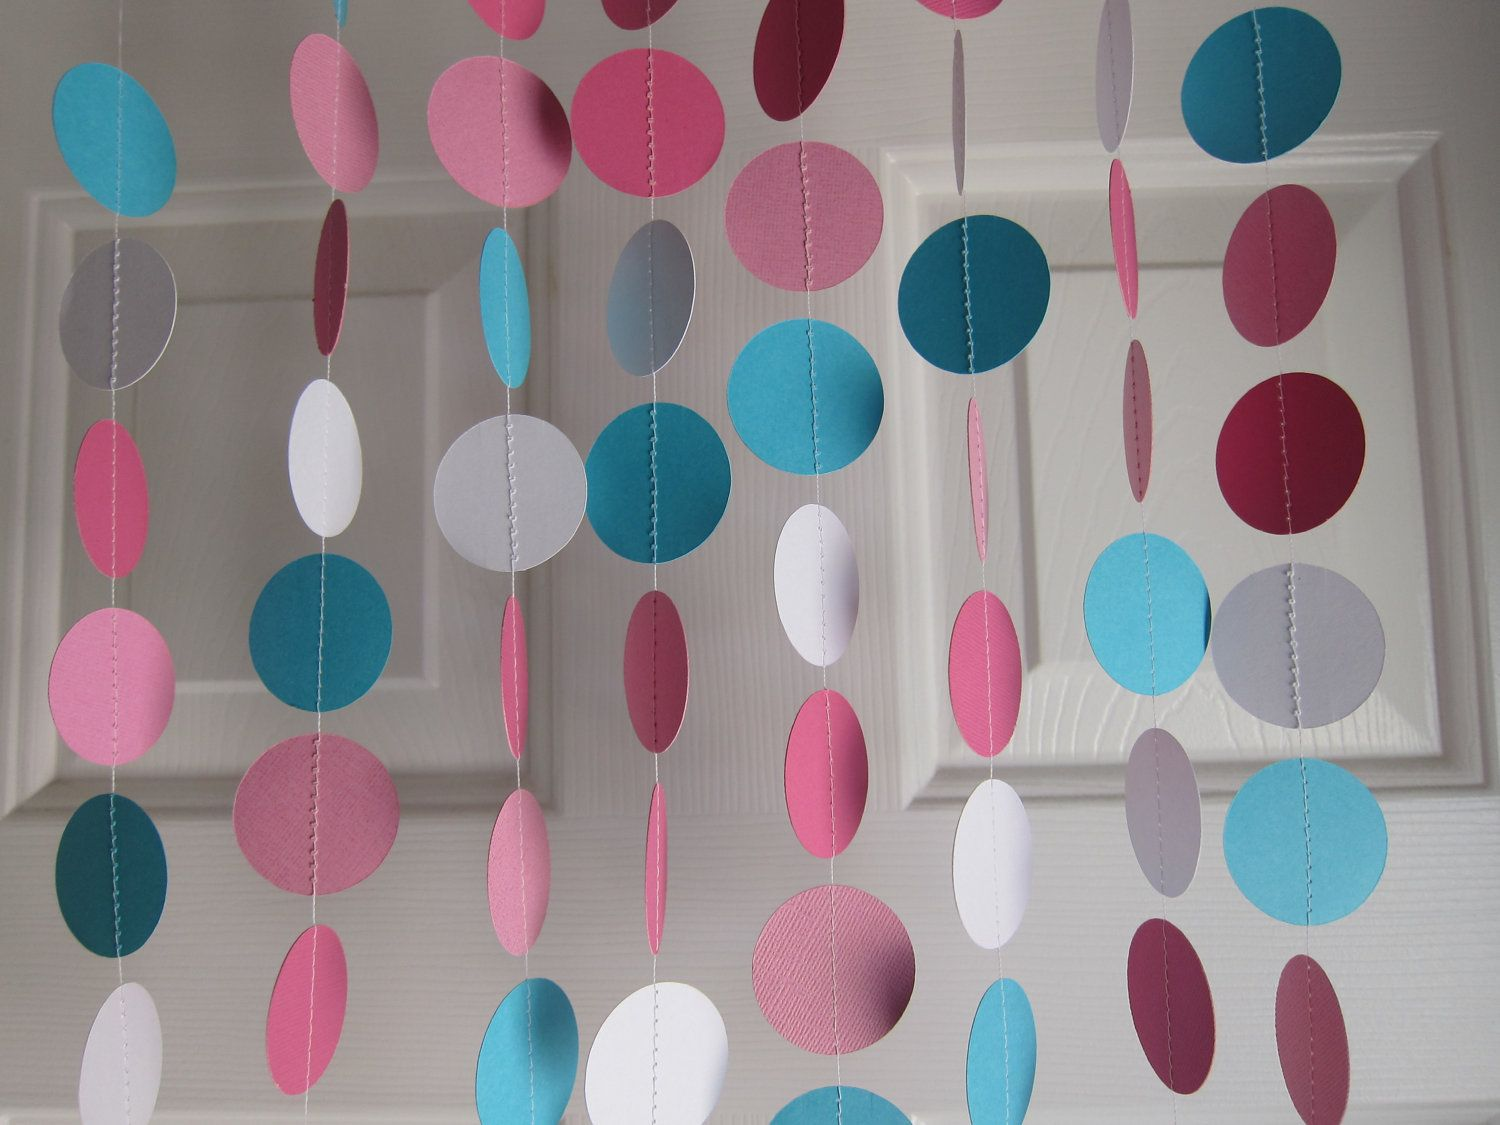 Turquoise Baby Shower Decorations Pink And Turquoise Paper Garland Baby Shower Garland Paper